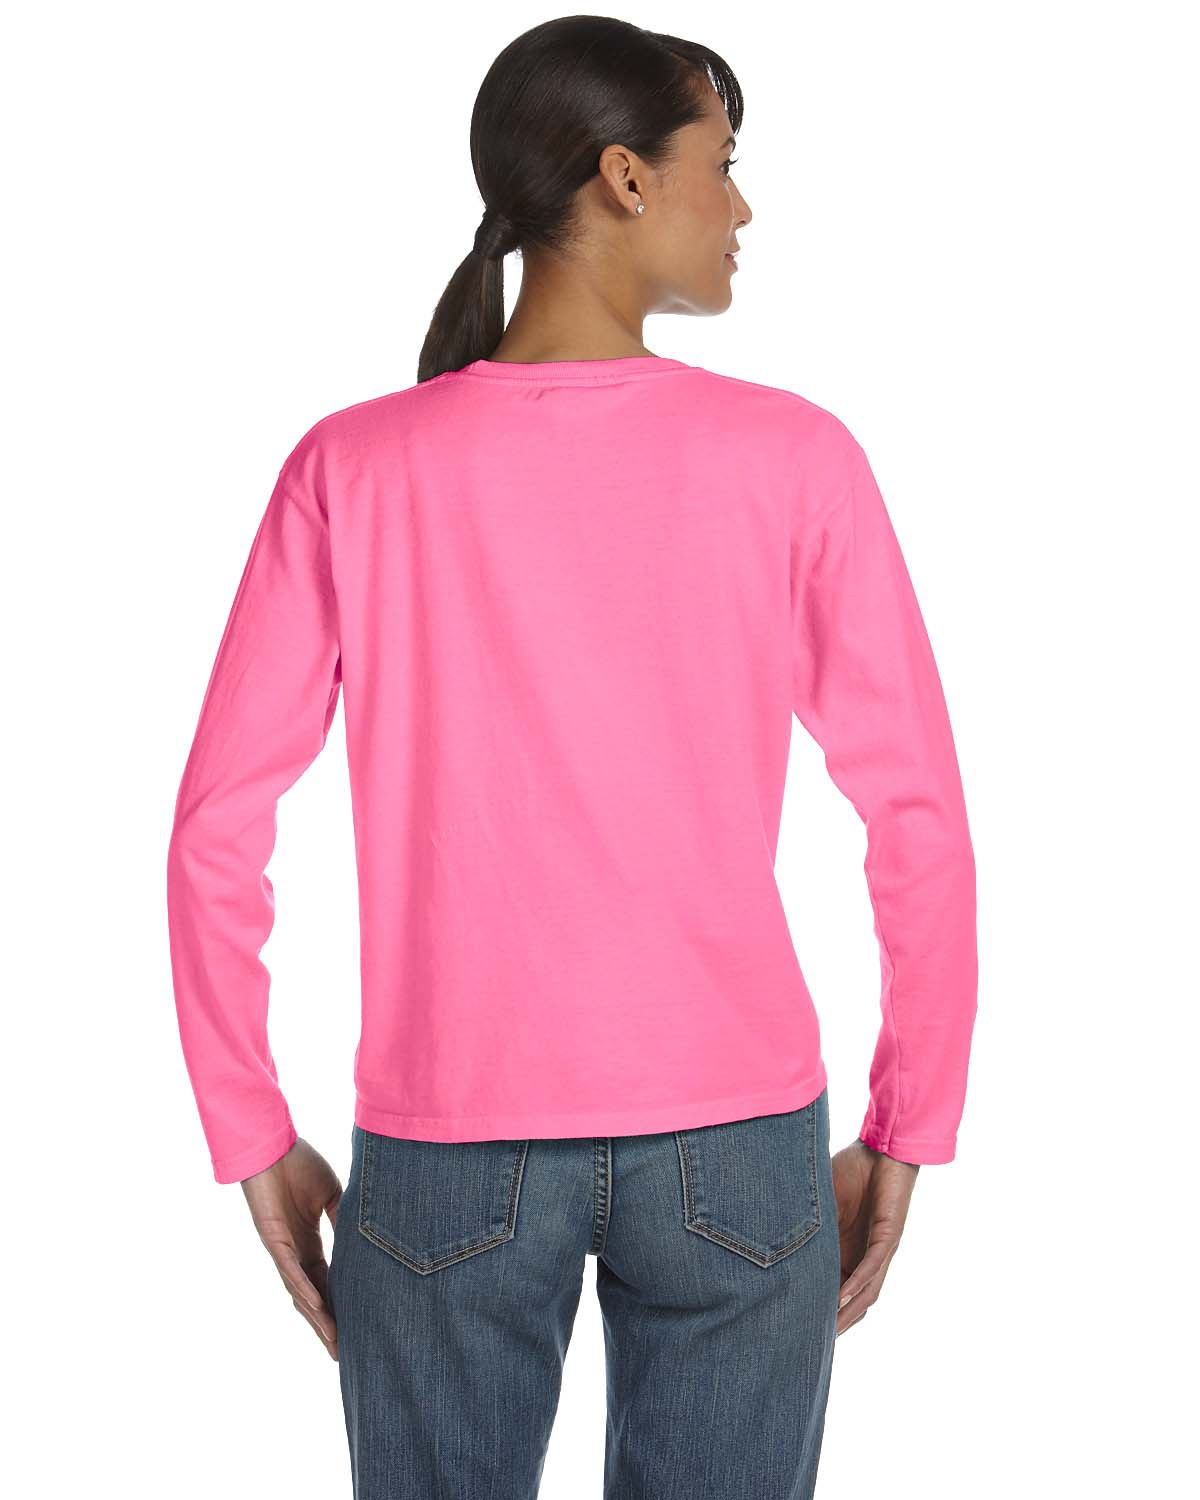 fbcaa0286 Comfort Colors C3014 Ladies' Midweight RS Long-Sleeve T-Shirt -  VeeTrends.com